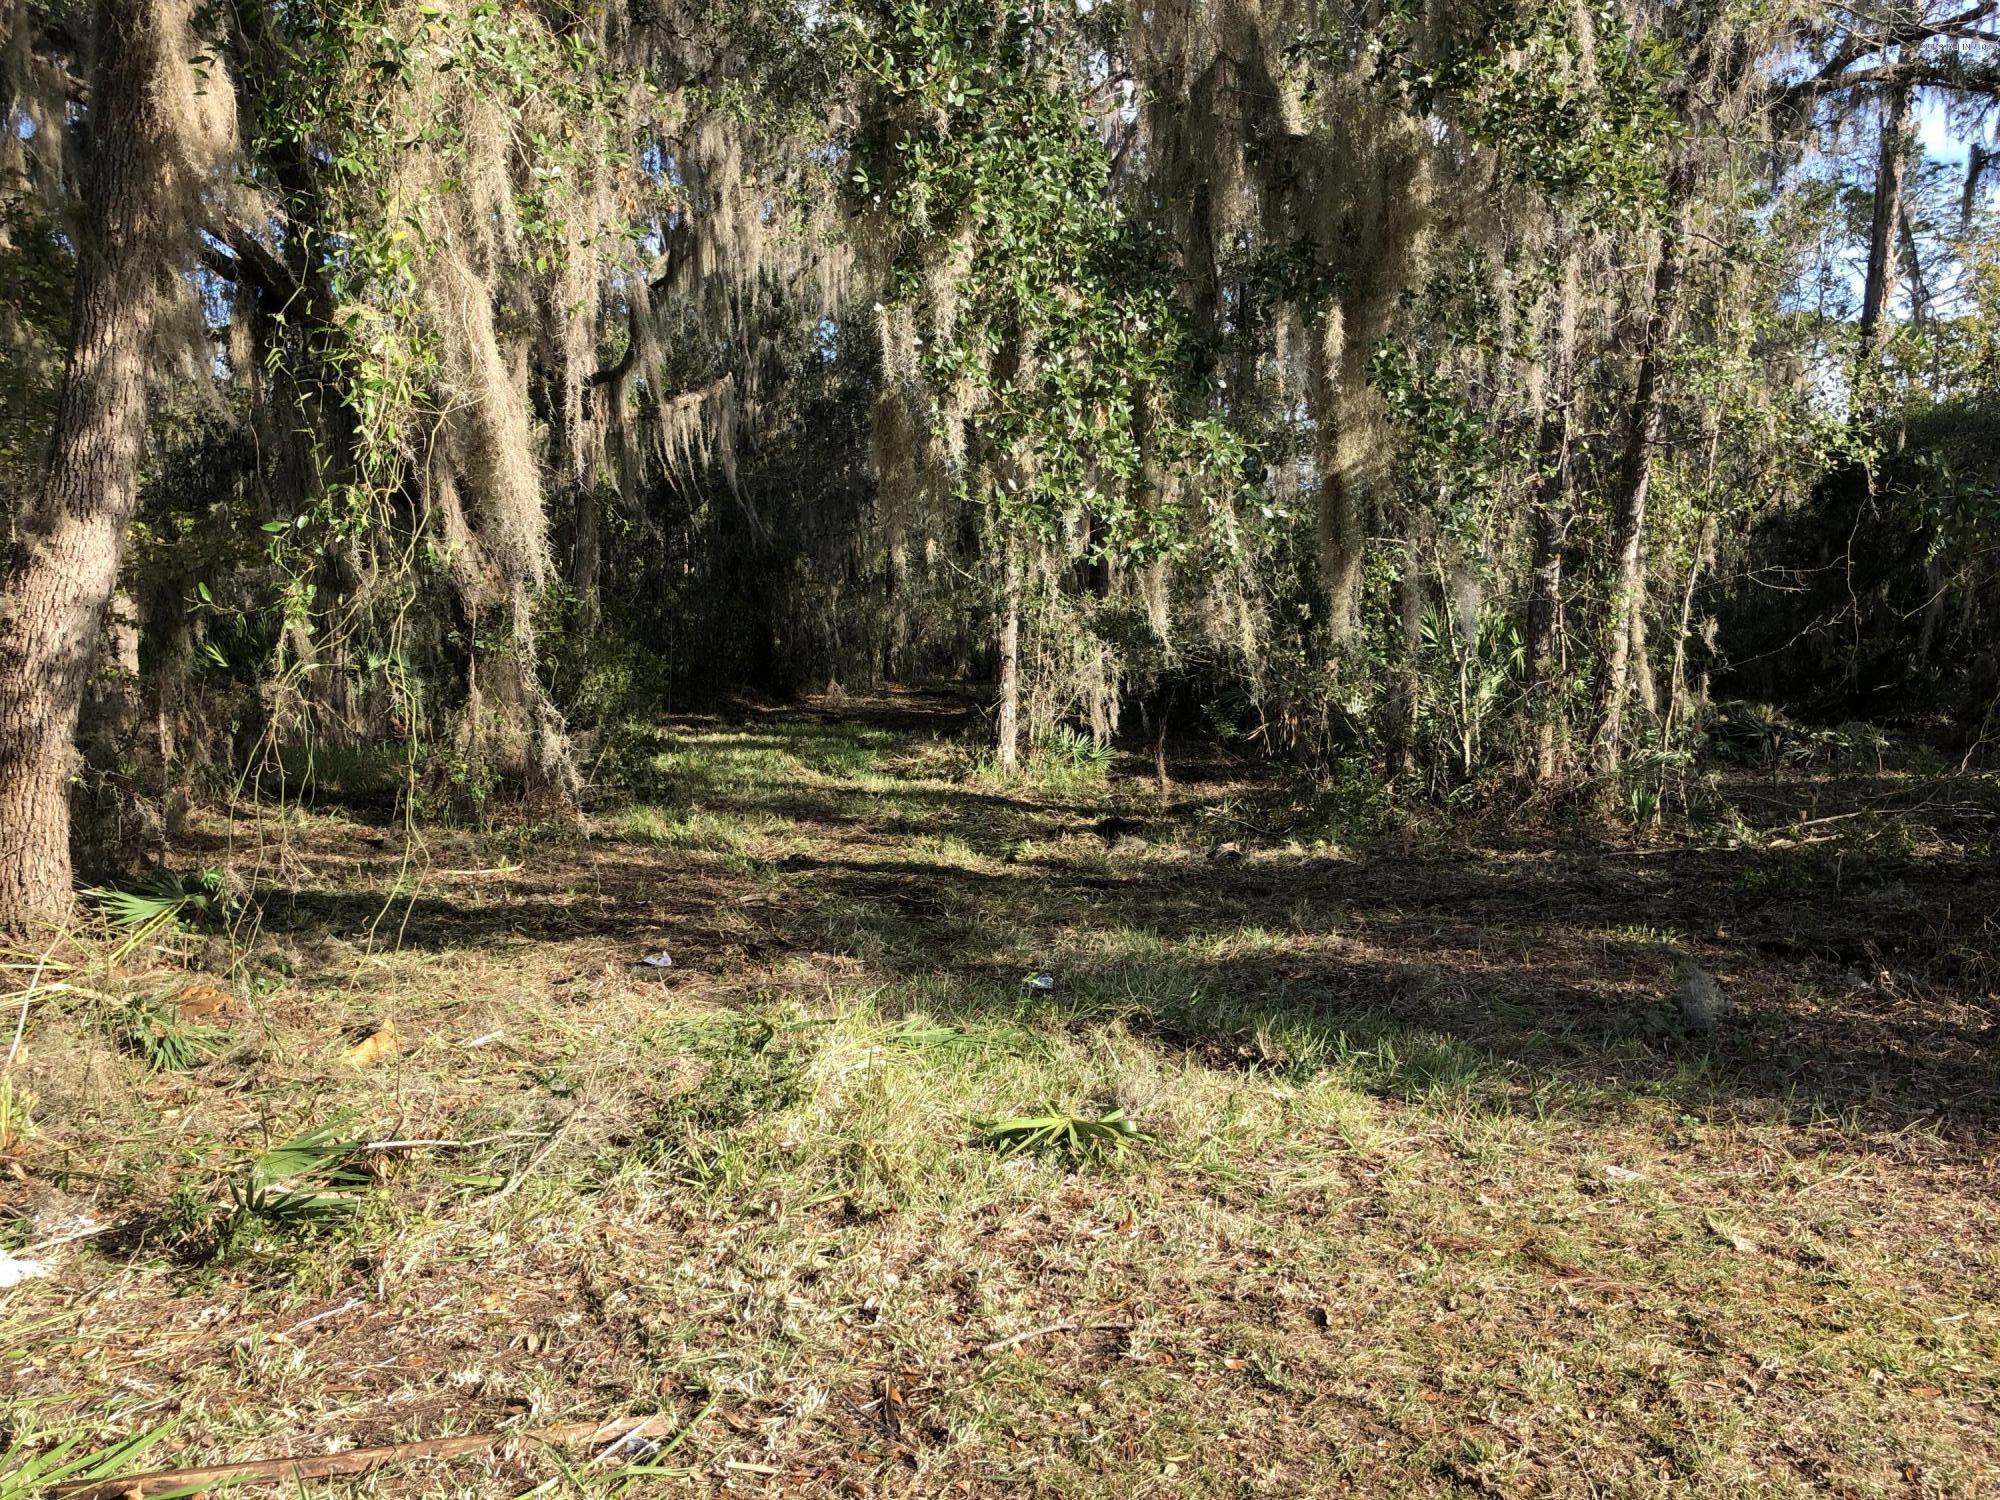 328 CEDAR CREEK, PALATKA, FLORIDA 32177, ,Vacant land,For sale,CEDAR CREEK,904999